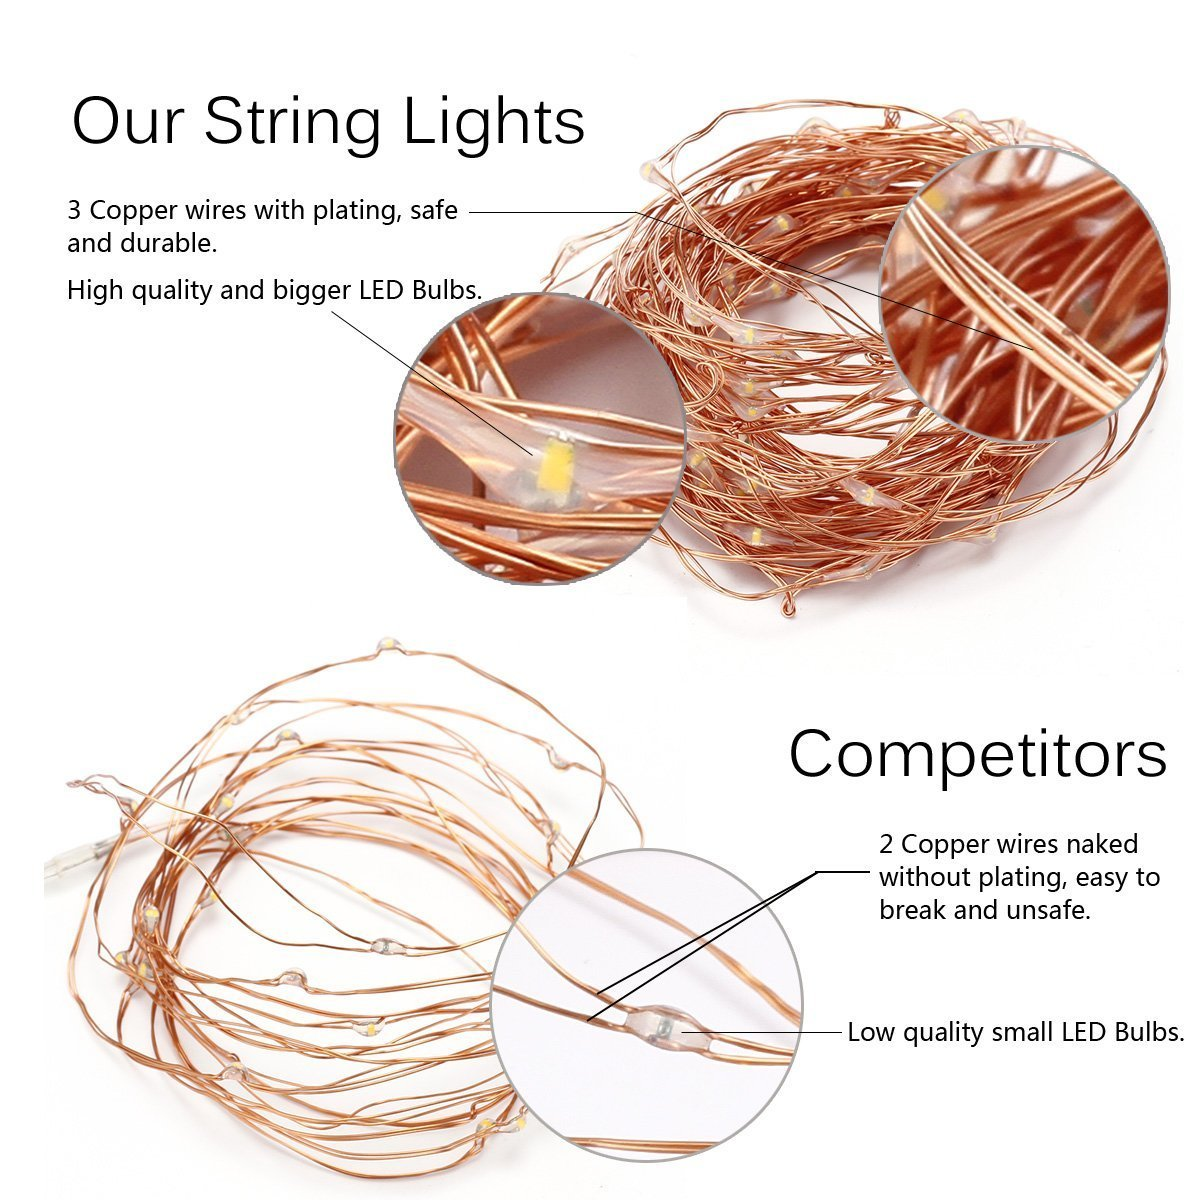 Waterproof Copper Wire Starry String Fairy Lights Usb See Thisit39s Wiring It39s For Garage Doors Powered Hanging Led Bedroom Indoor Outdoor 33feet 100 Leds Warm White Ambiance